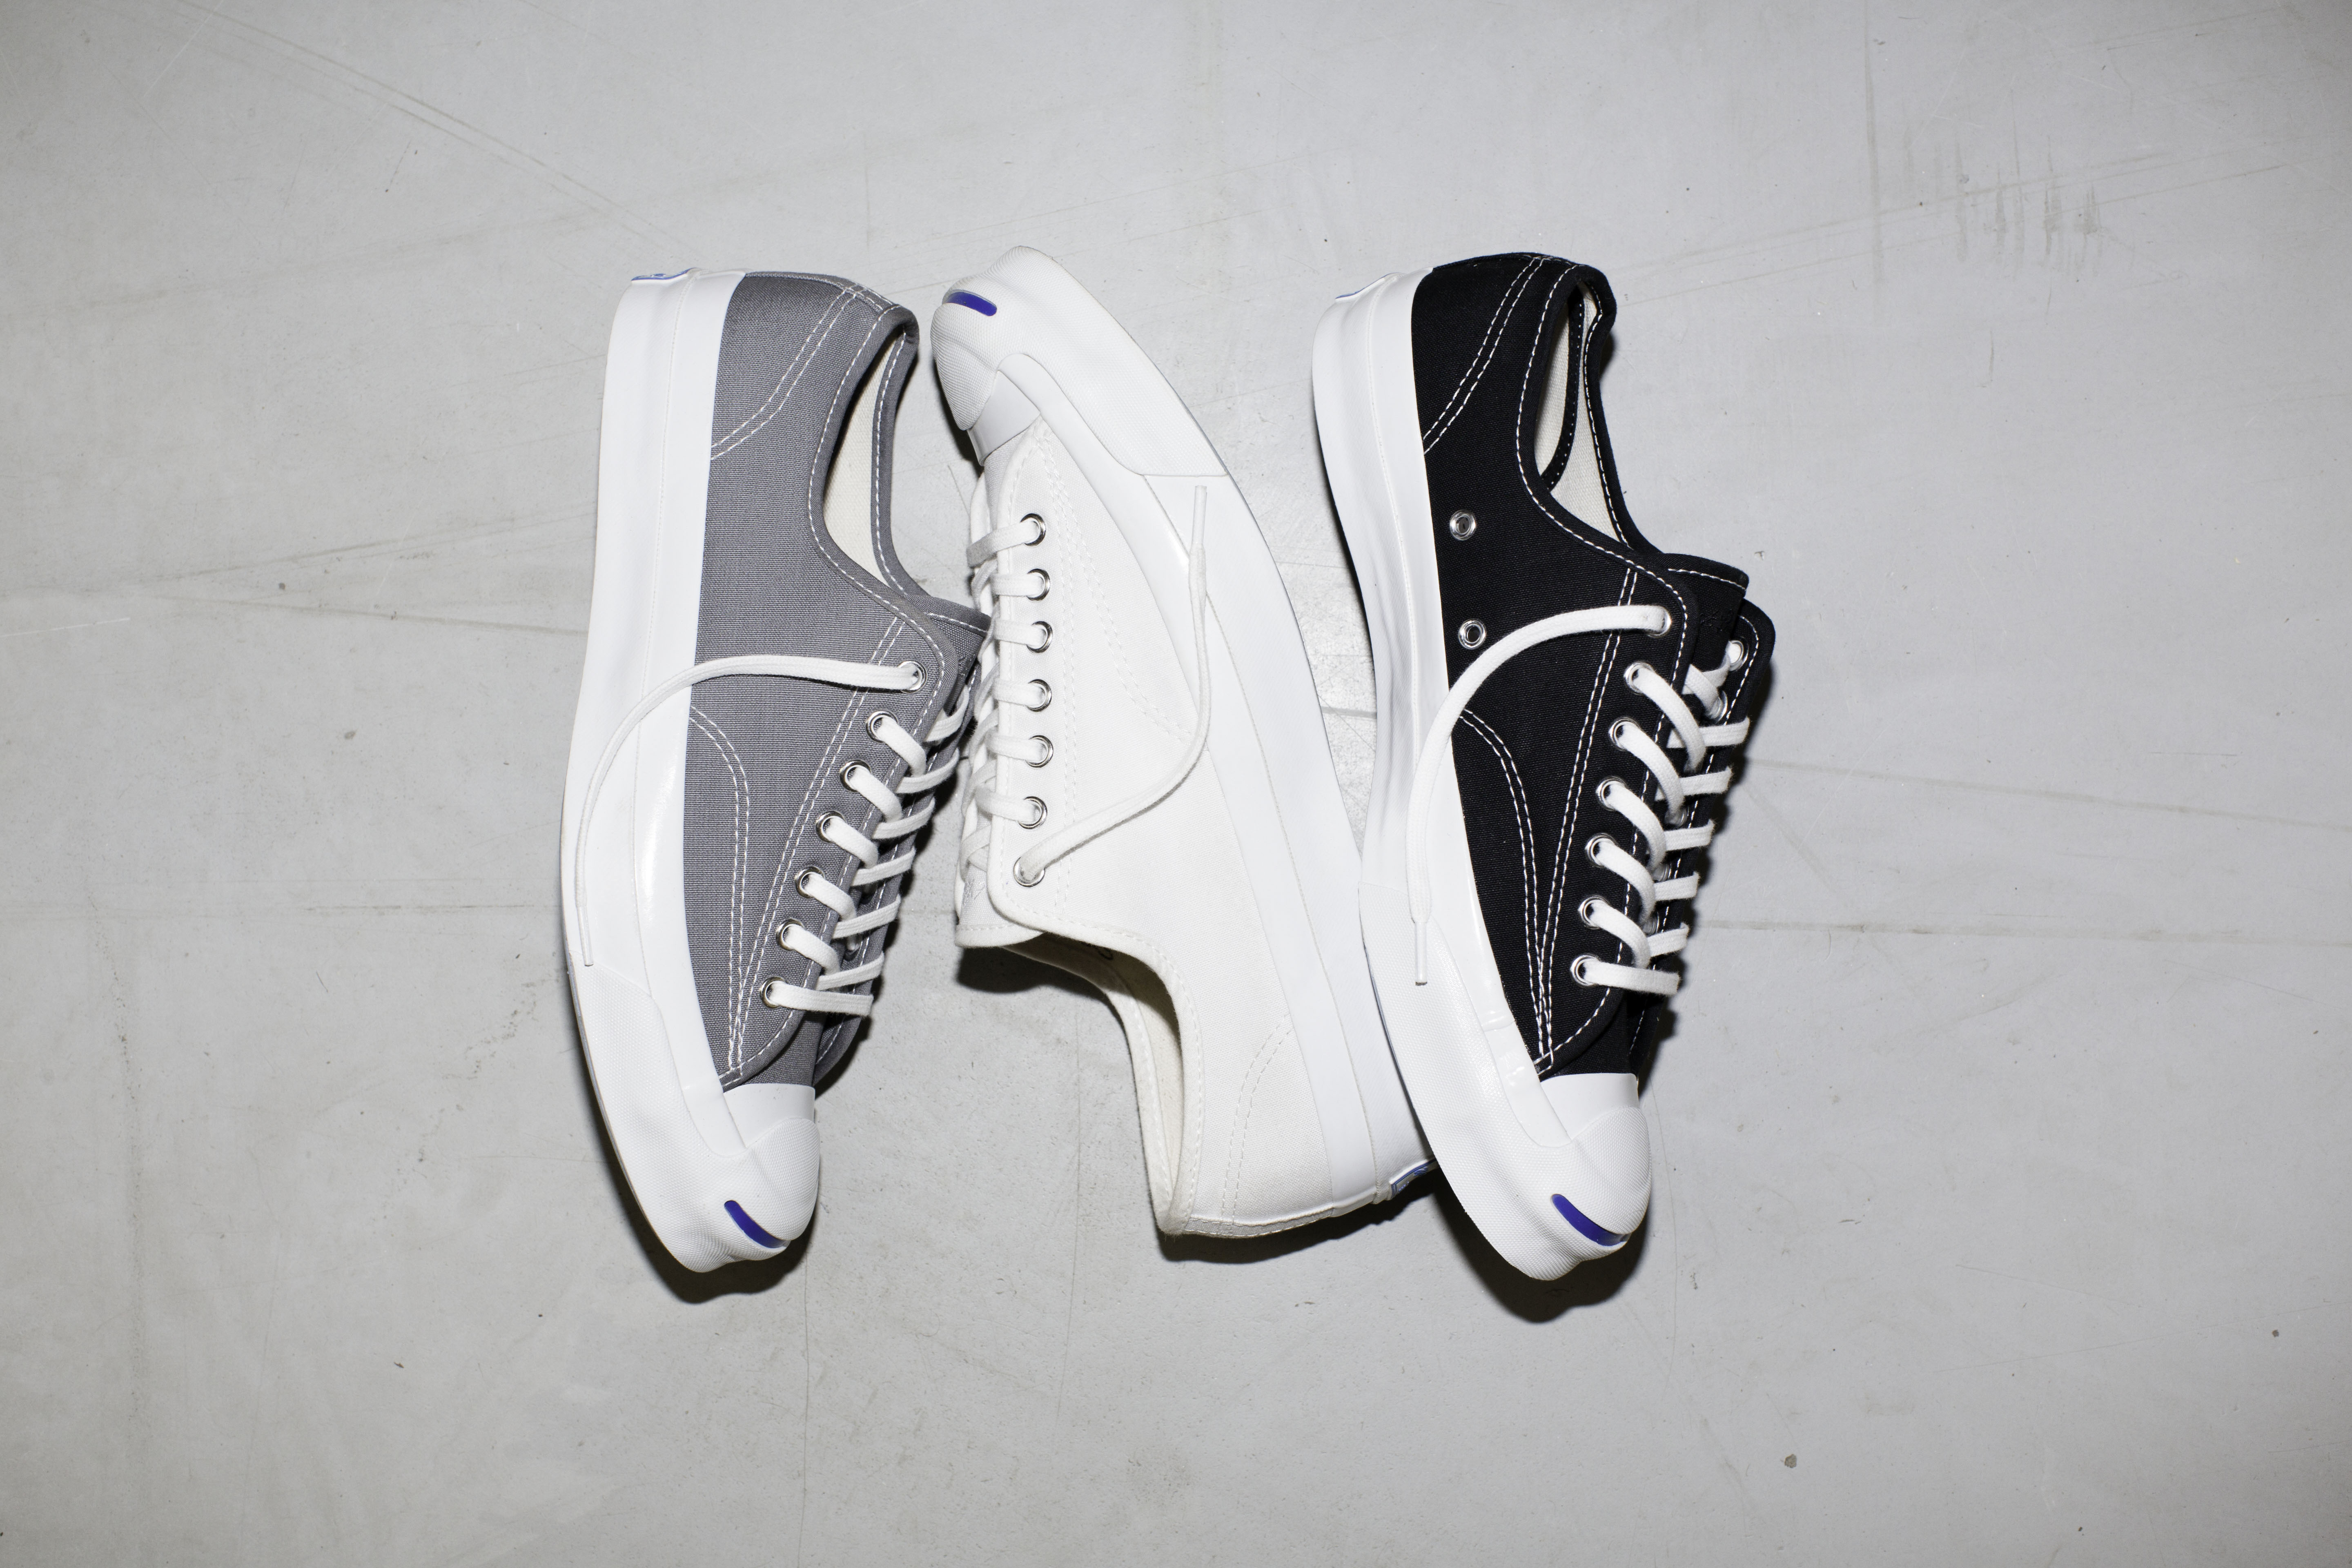 converse shoes history wikipedia definition of leadership